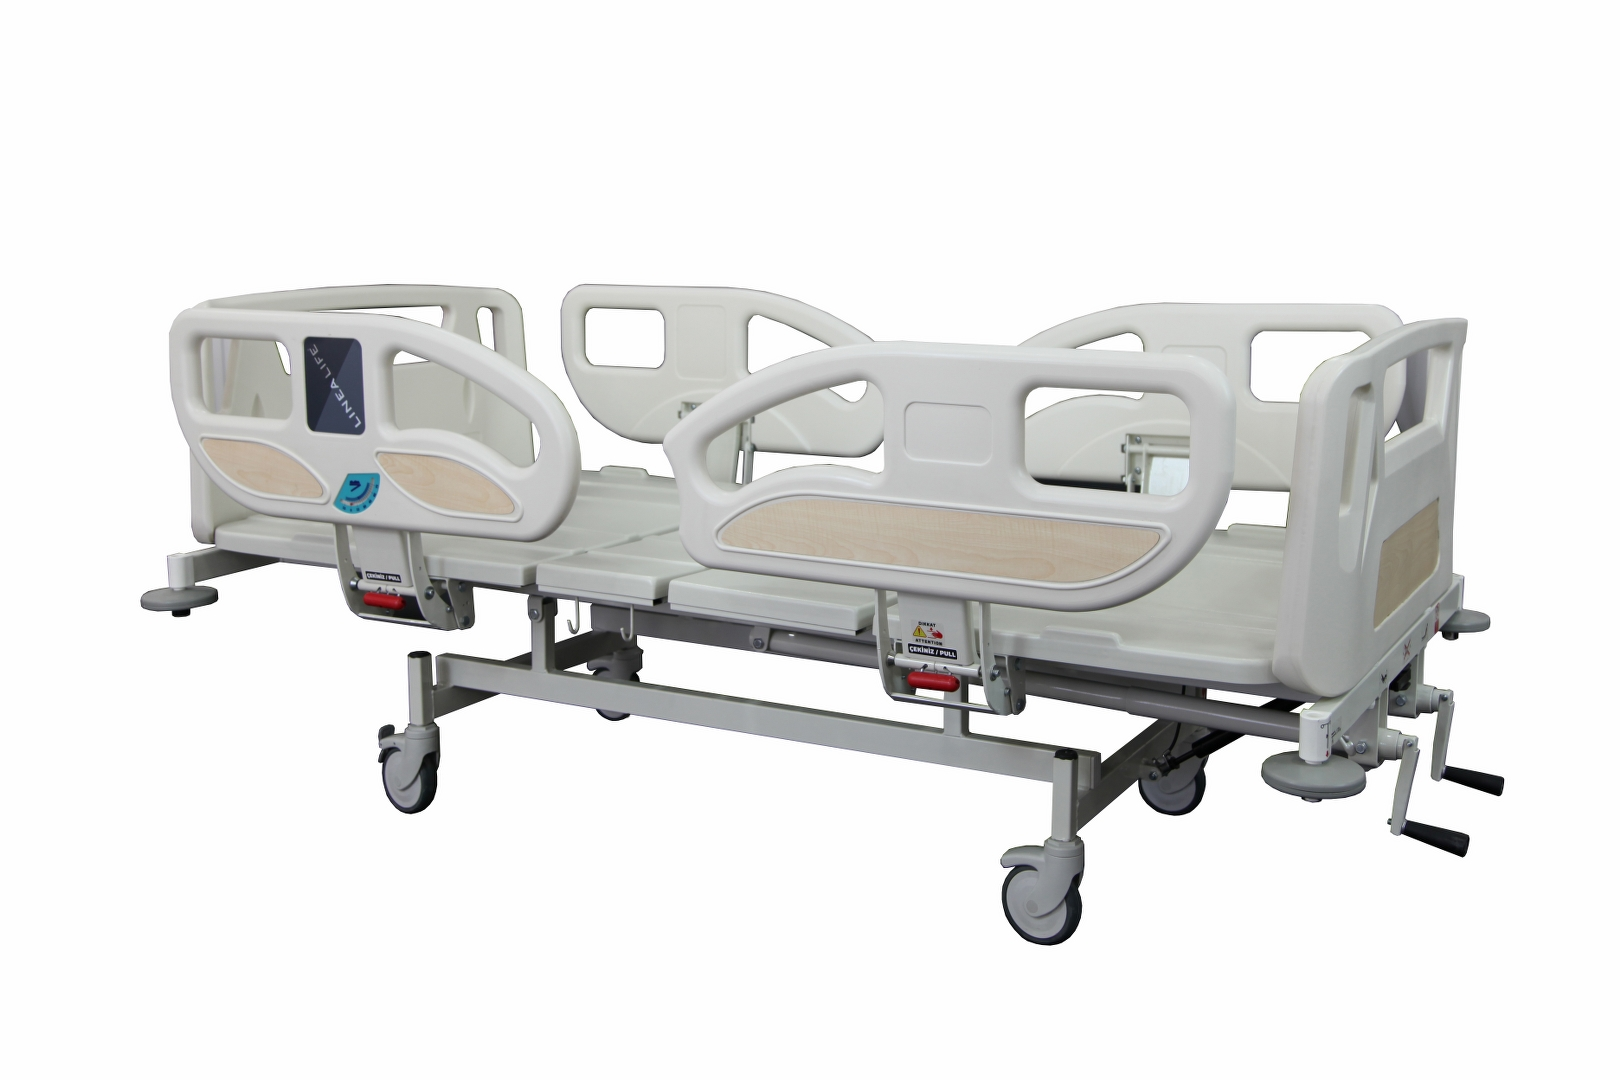 HKM-UA32 MECHANICAL HOSPITAL BED WITH 3 ADJUSTMENT